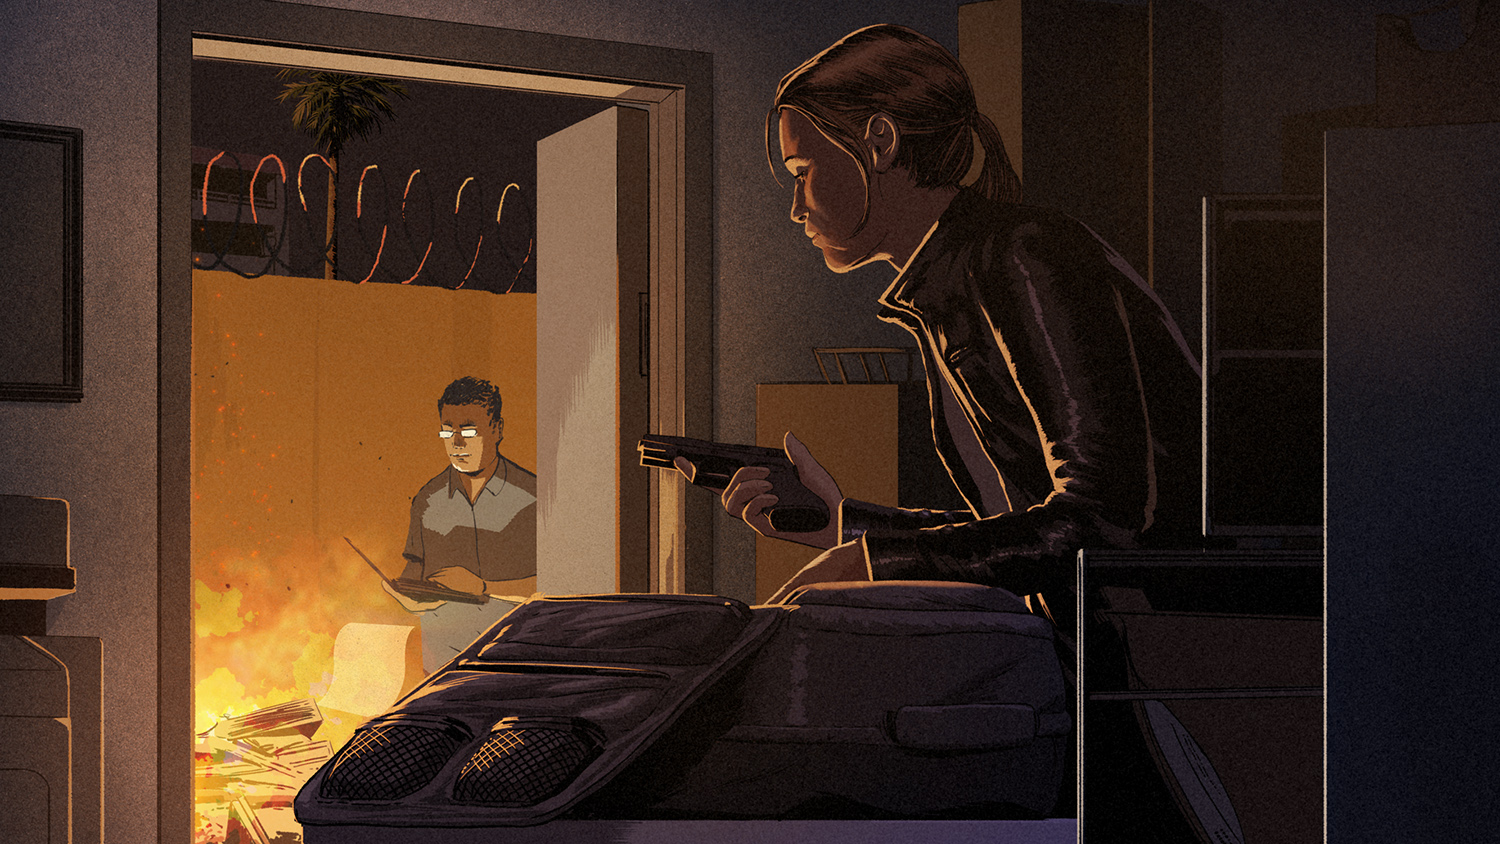 Sarah-Carlson-CIA-I-Spy-podcast-Guy-Shields-illustration-article